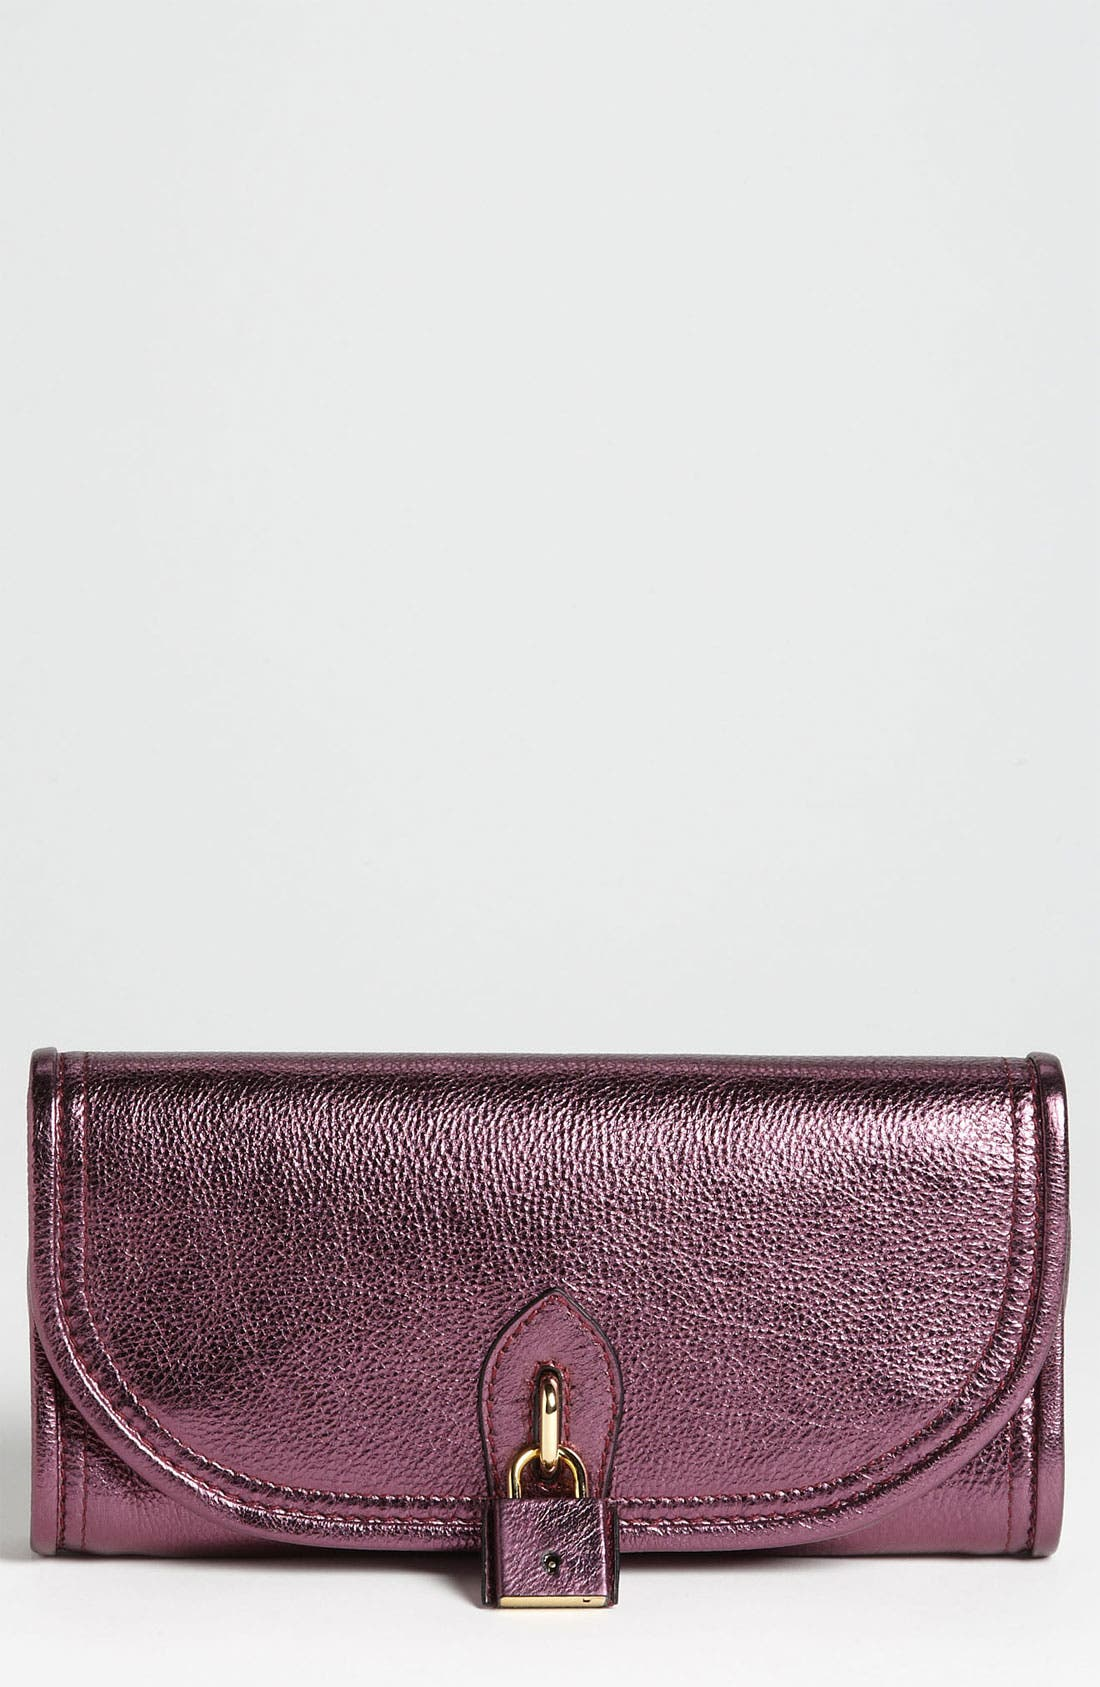 Alternate Image 1 Selected - Burberry 'Mayfield' Metallic Leather Clutch